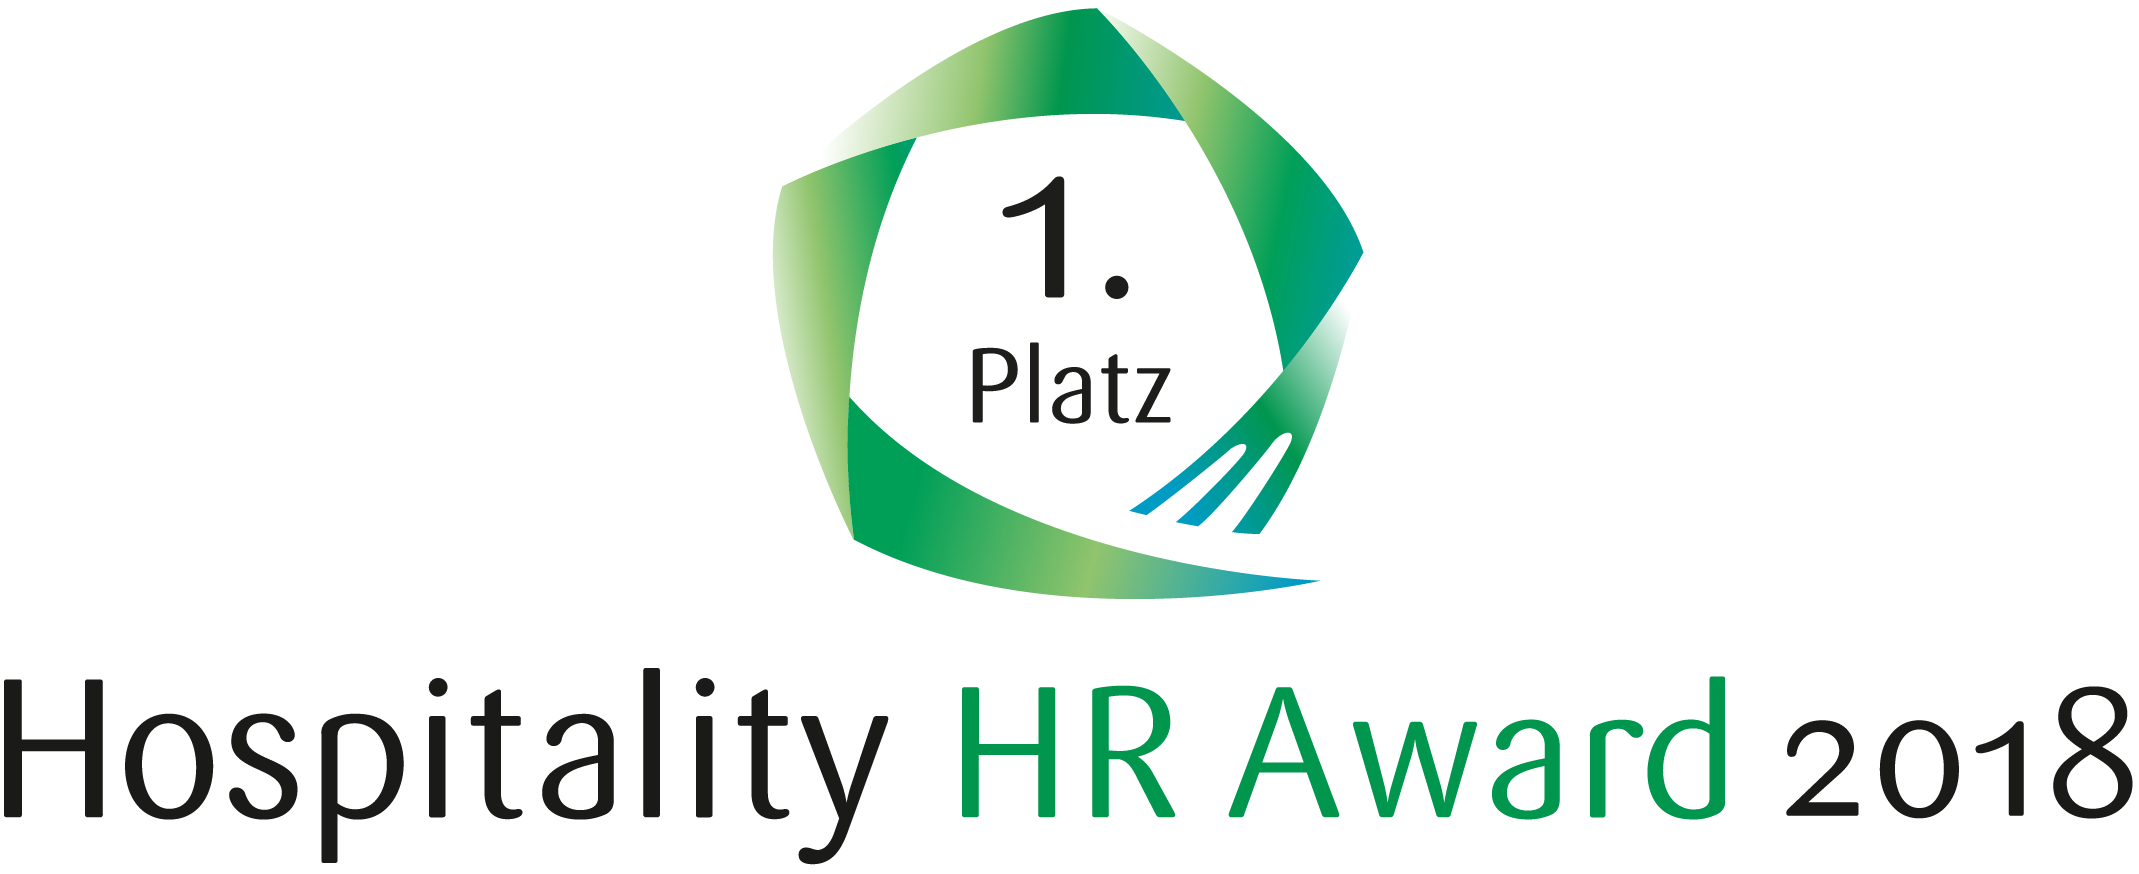 HR Award Logo